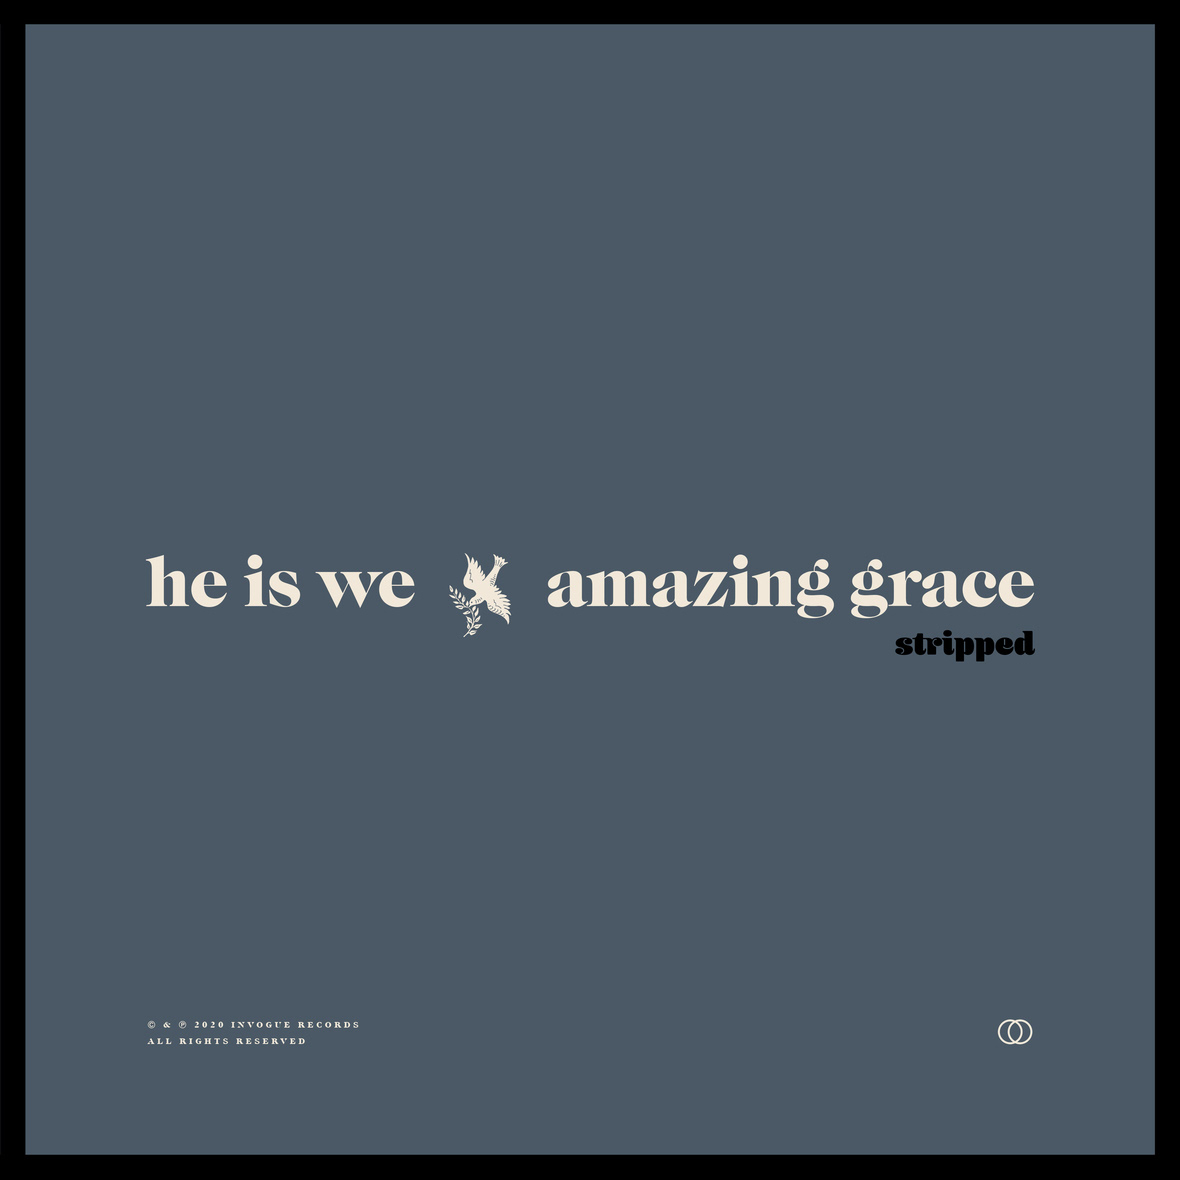 amazing-grace-stripped copy